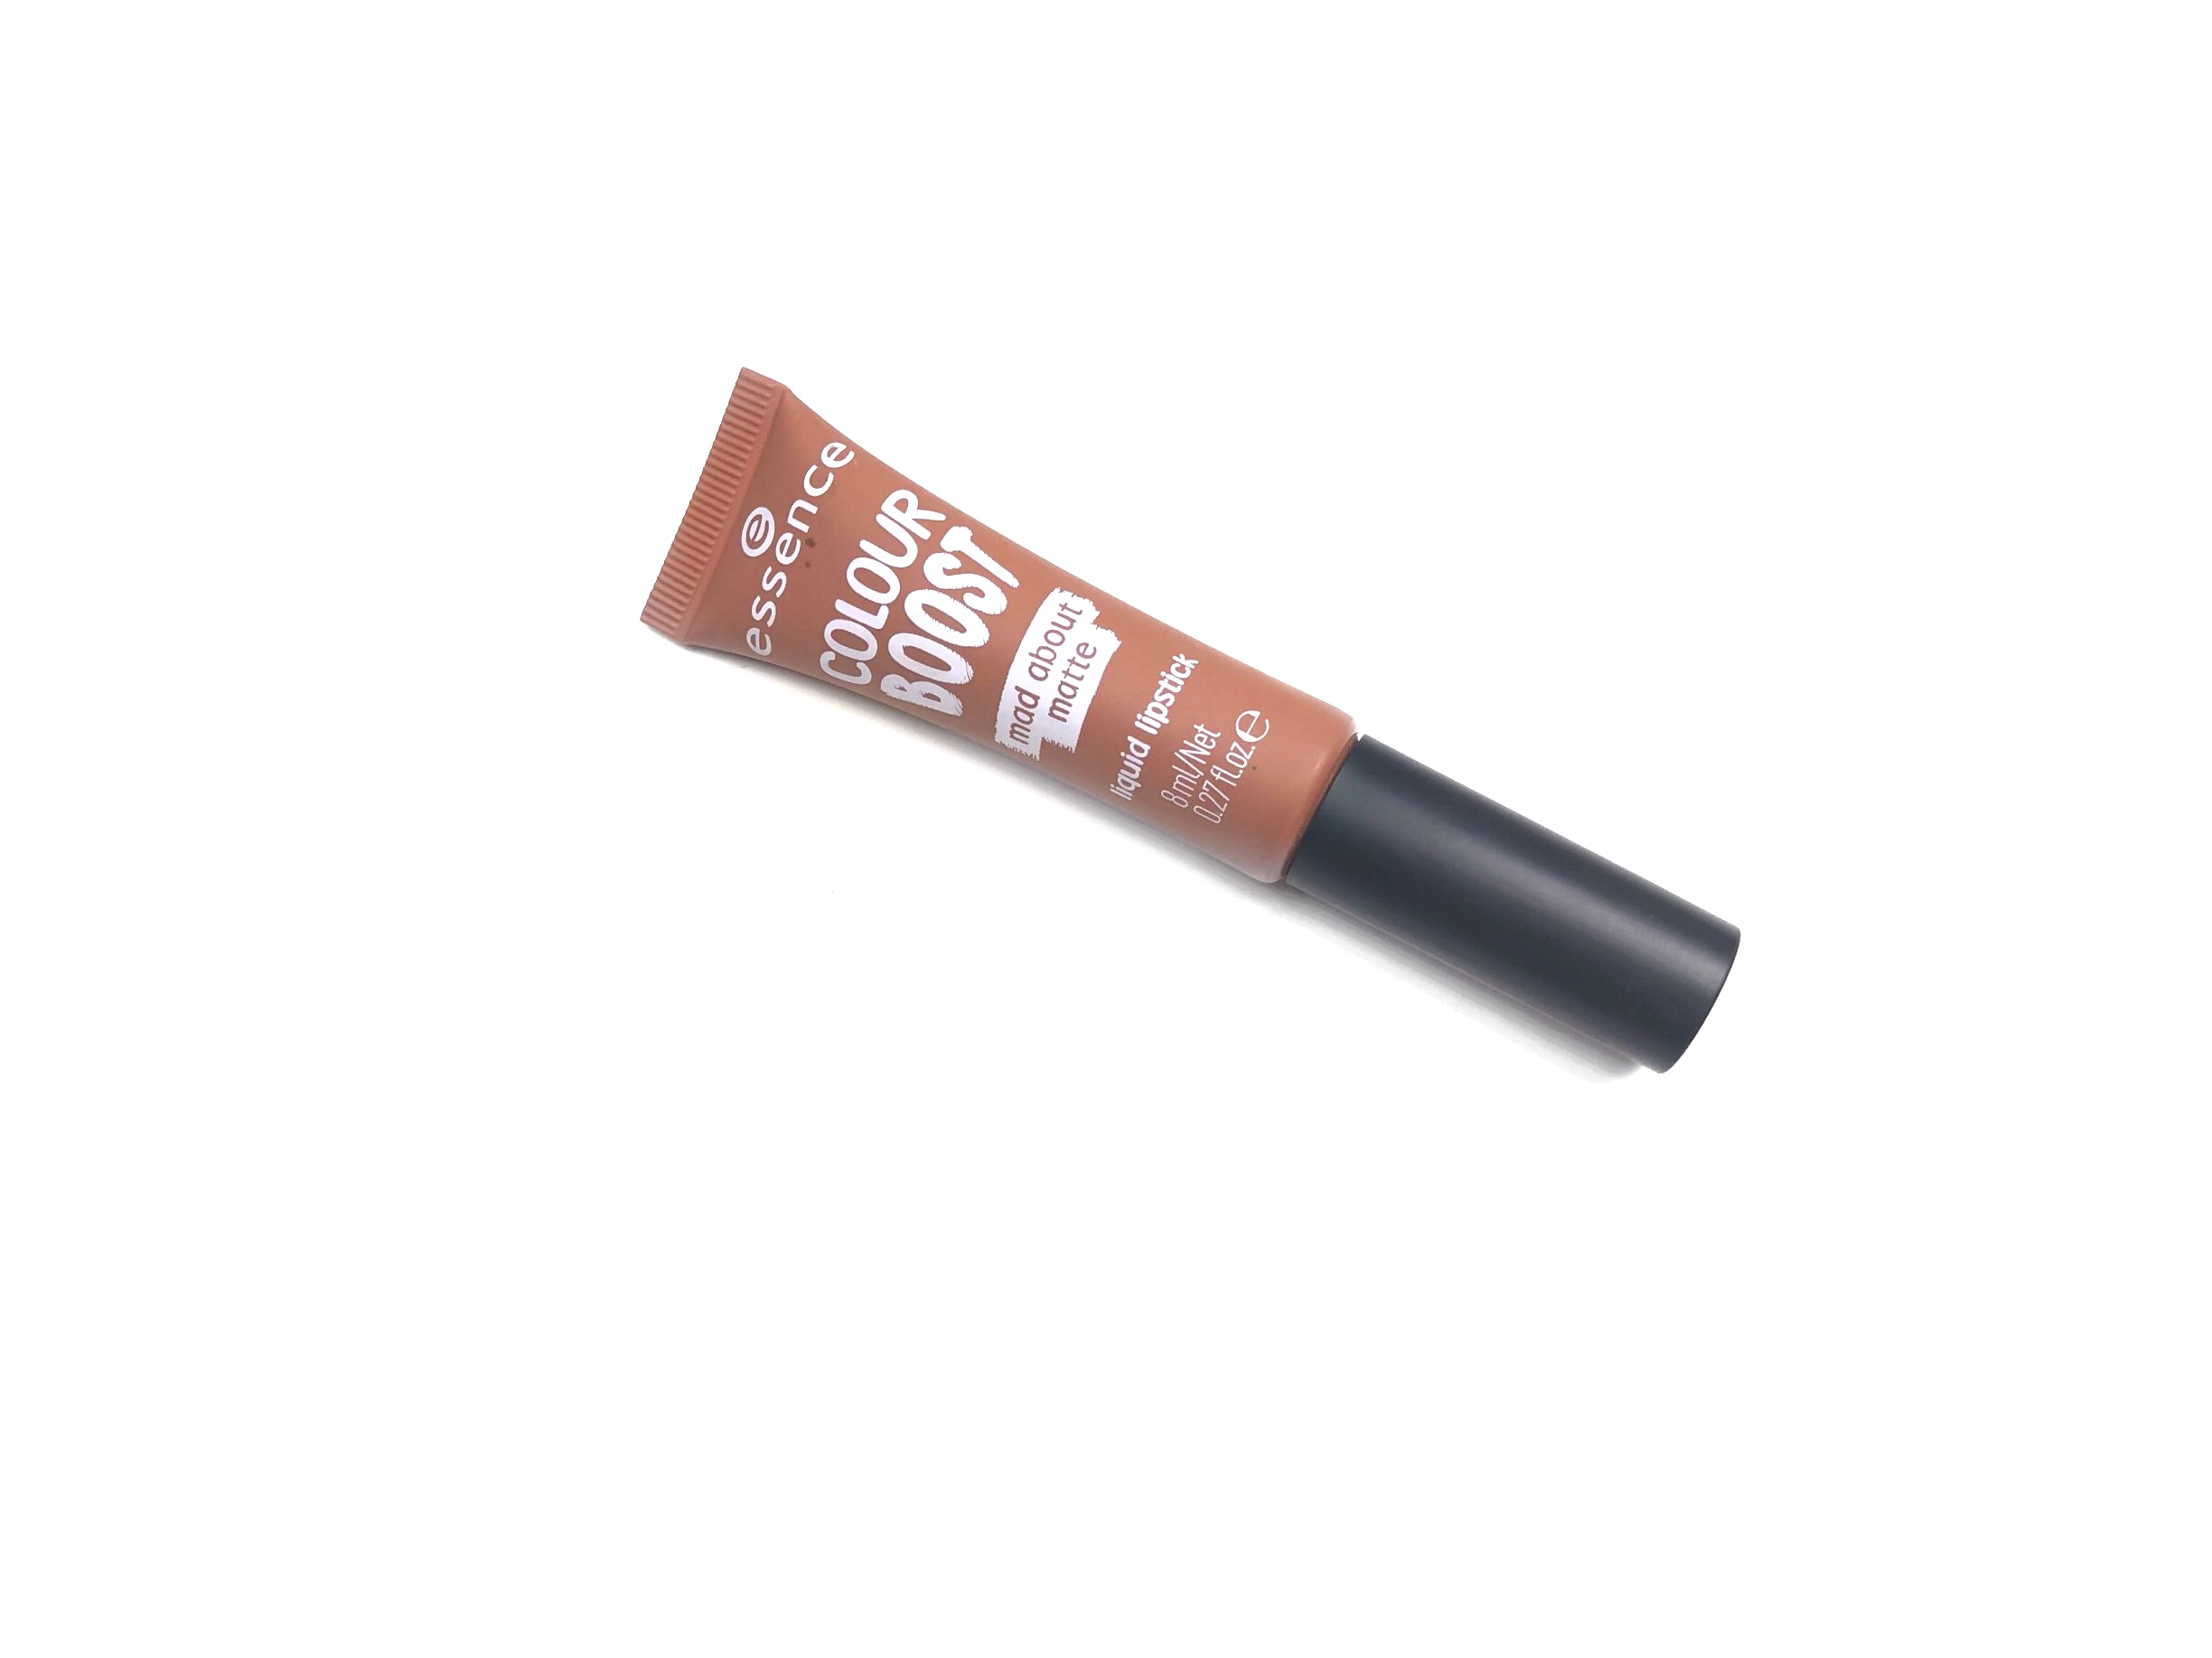 Essence Colour Boost Mad About Matte Liquid Lipstick in 01 Dusty Romance